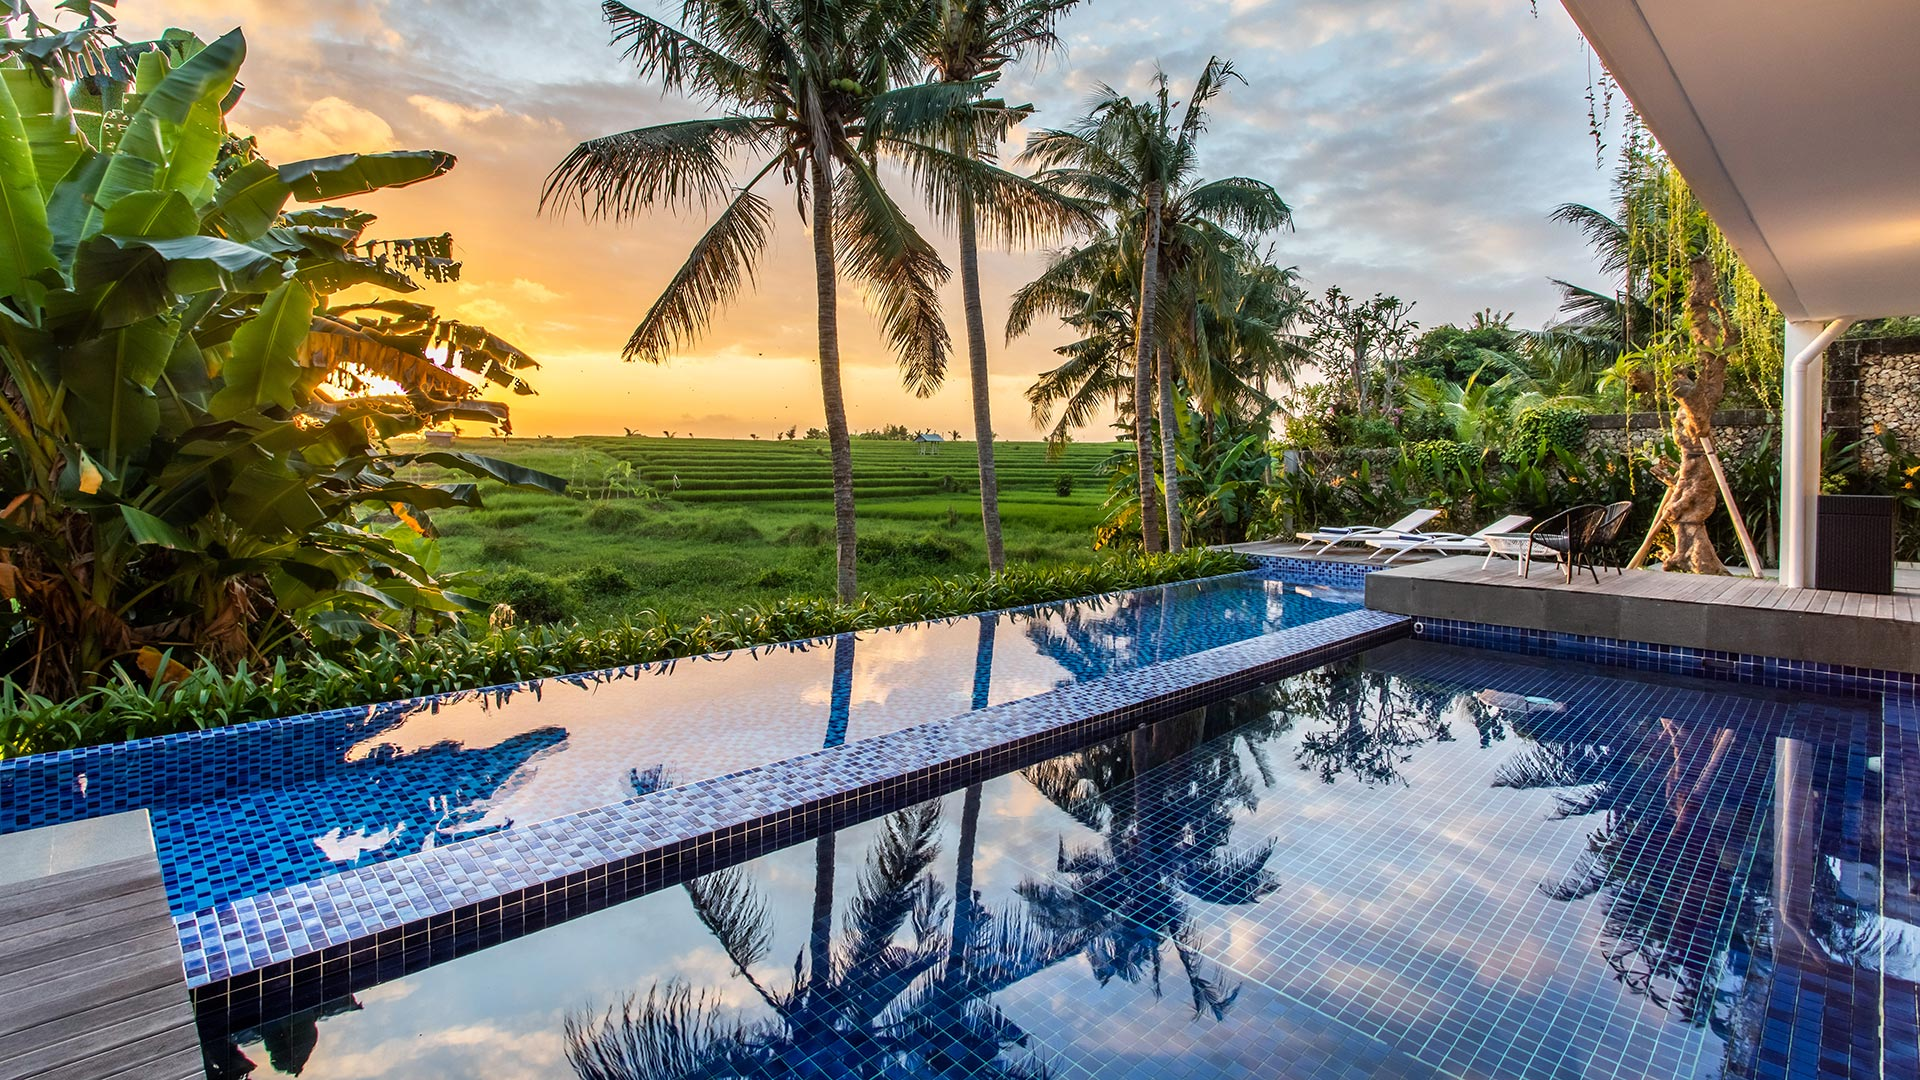 Amantrana is a small but beautiful hotel situated in Babakan, Canggu. It has 10 luxury bedrooms with black and...